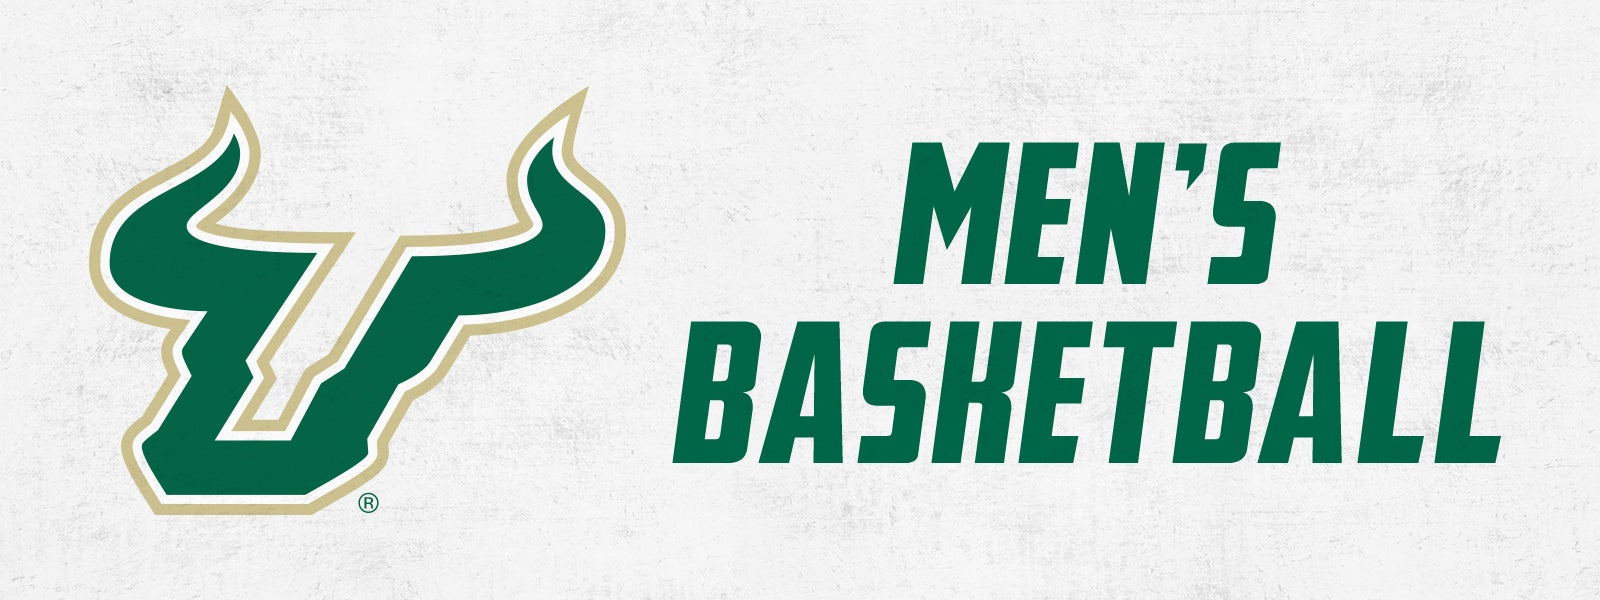 USF Men's Basketball vs. Wichita St